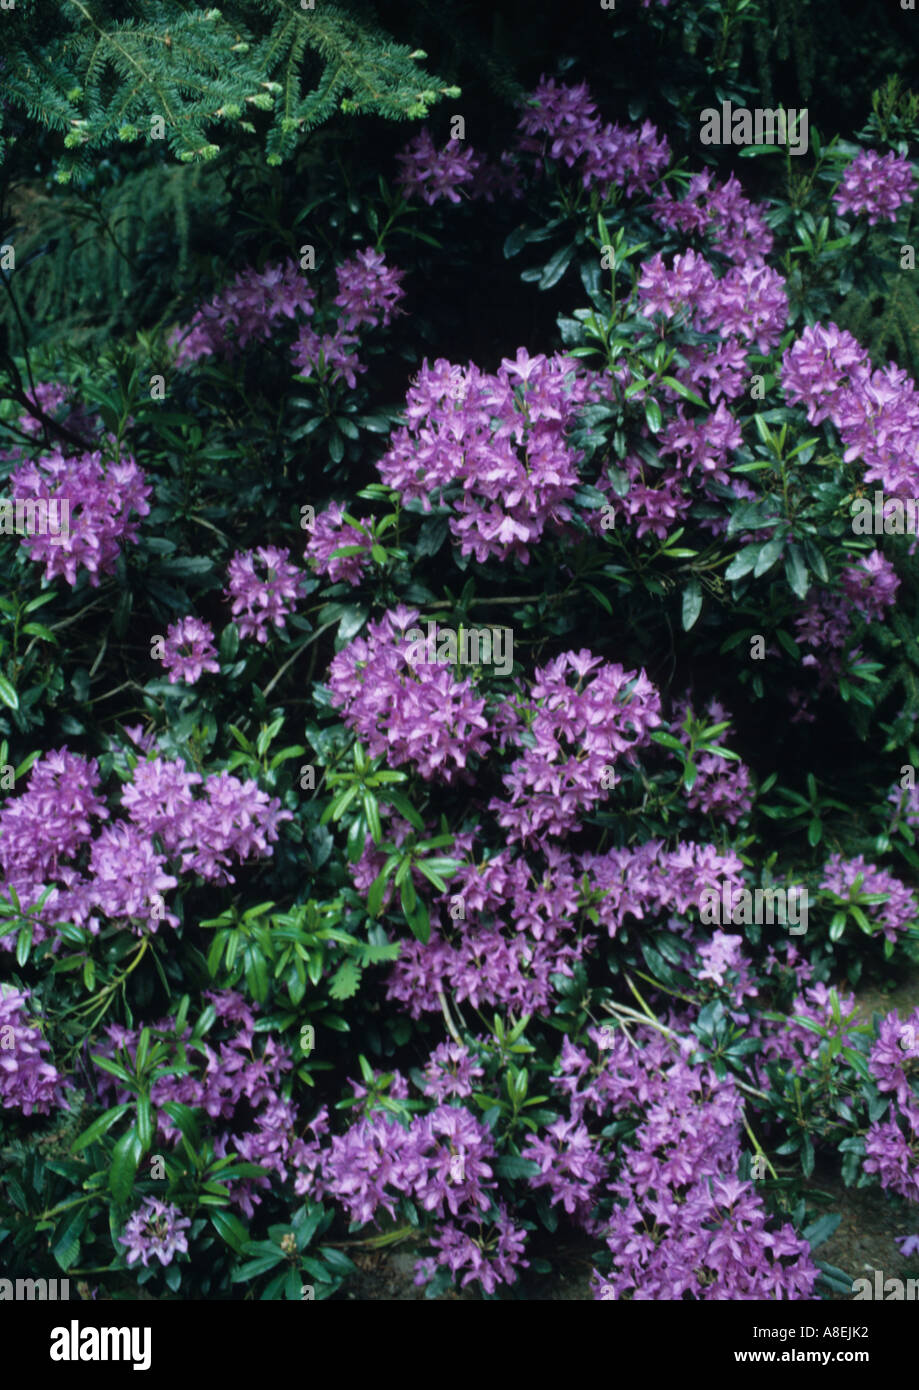 Green Bush With Purple Flowers In The Uk Stock Photo 6902705 Alamy